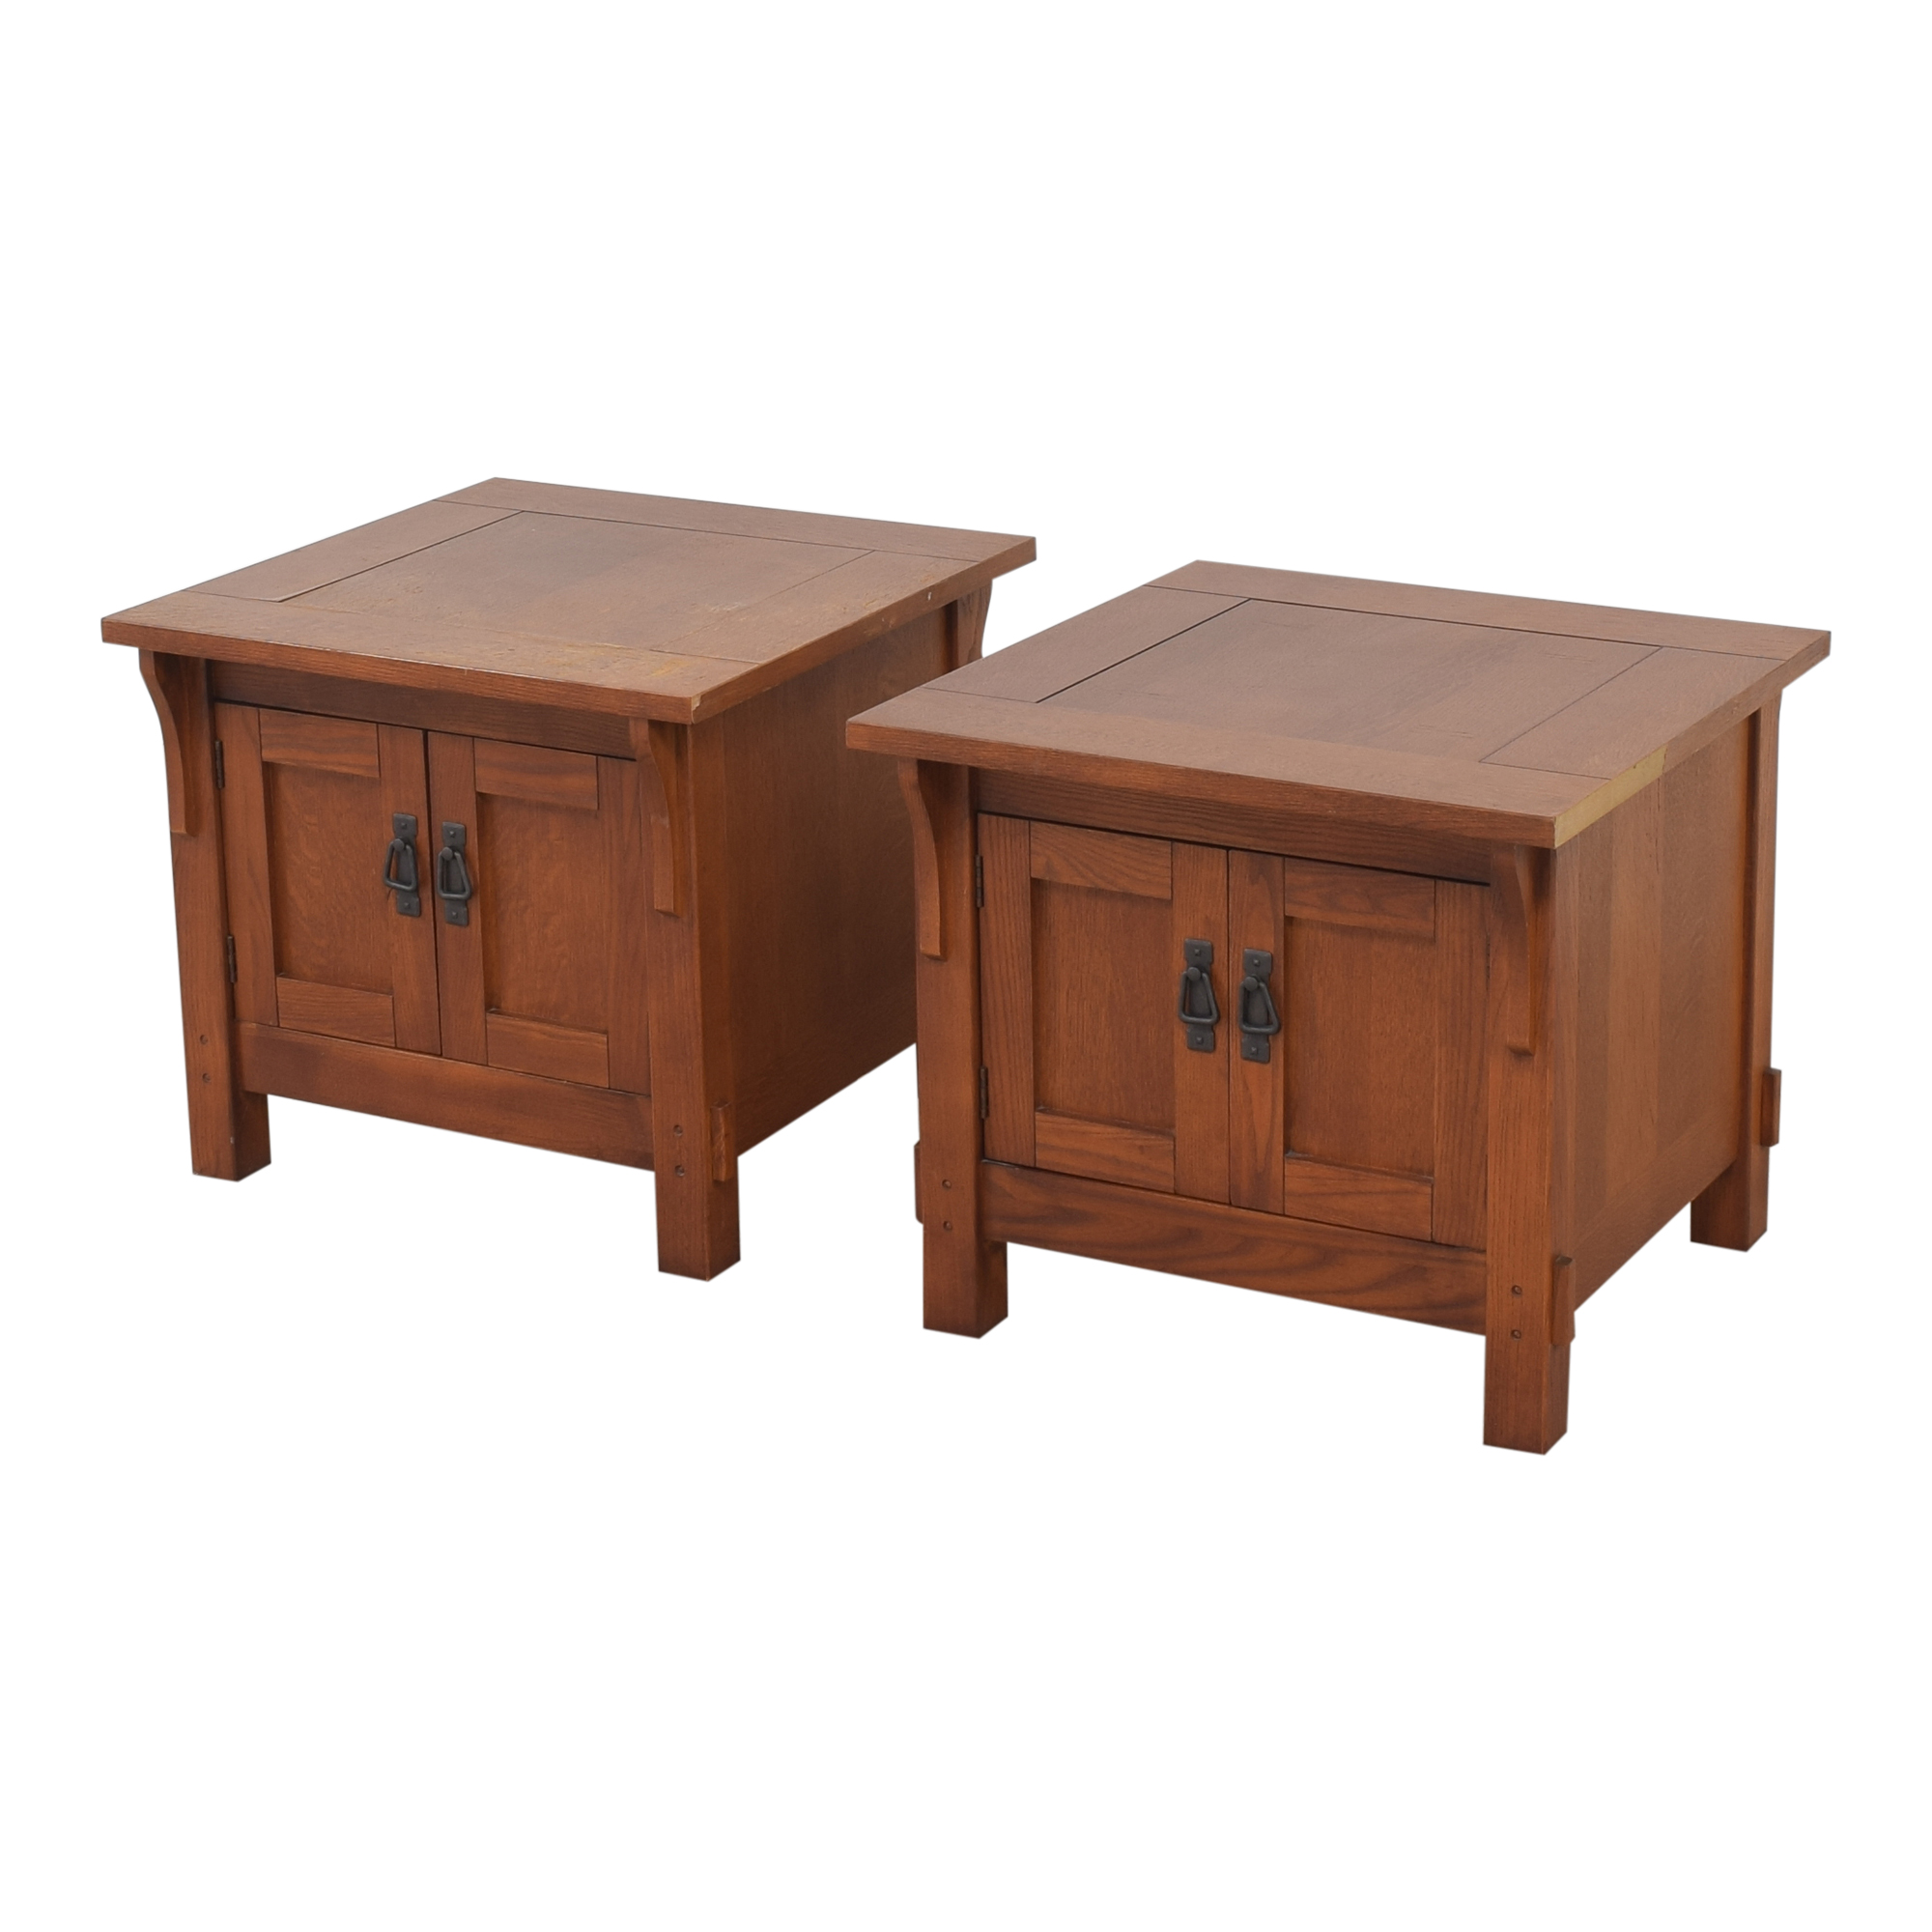 Bassett Furniture Bassett Furniture Two Door End Tables coupon